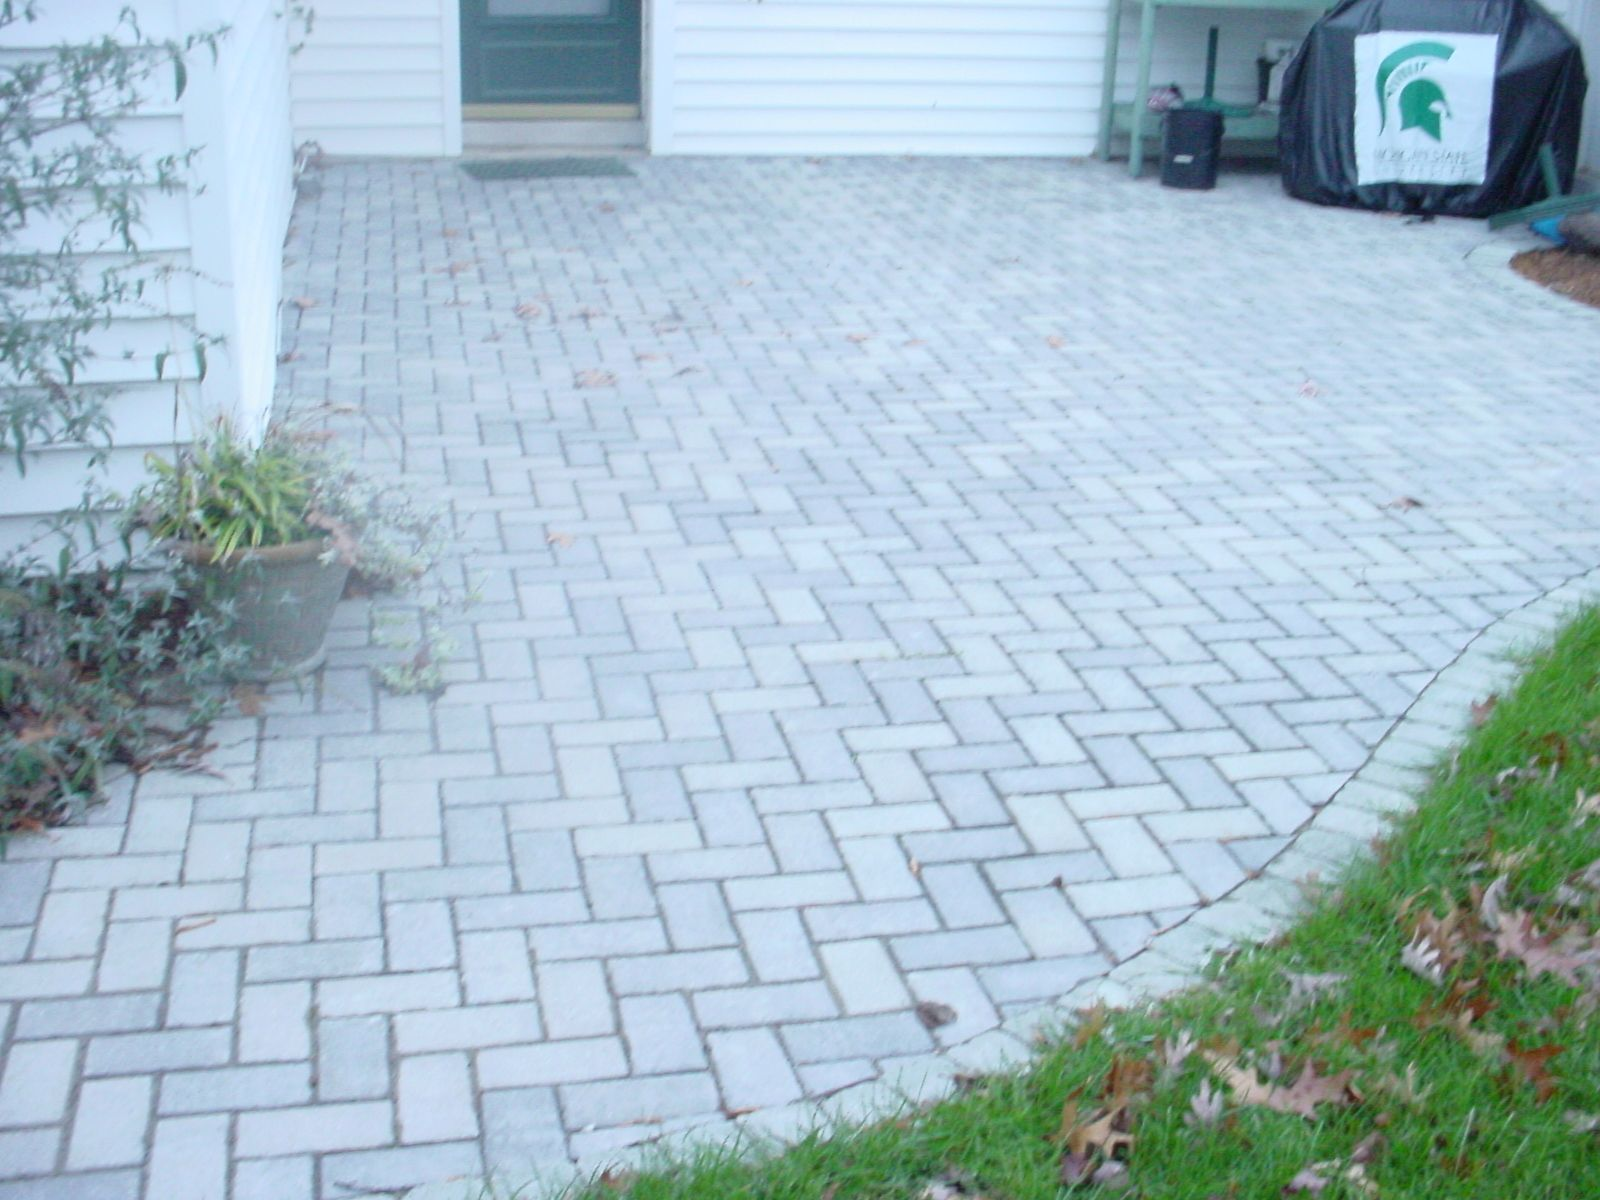 Uni Decor Pavers brick paver unilock hollandstone granite color. | brick pavers